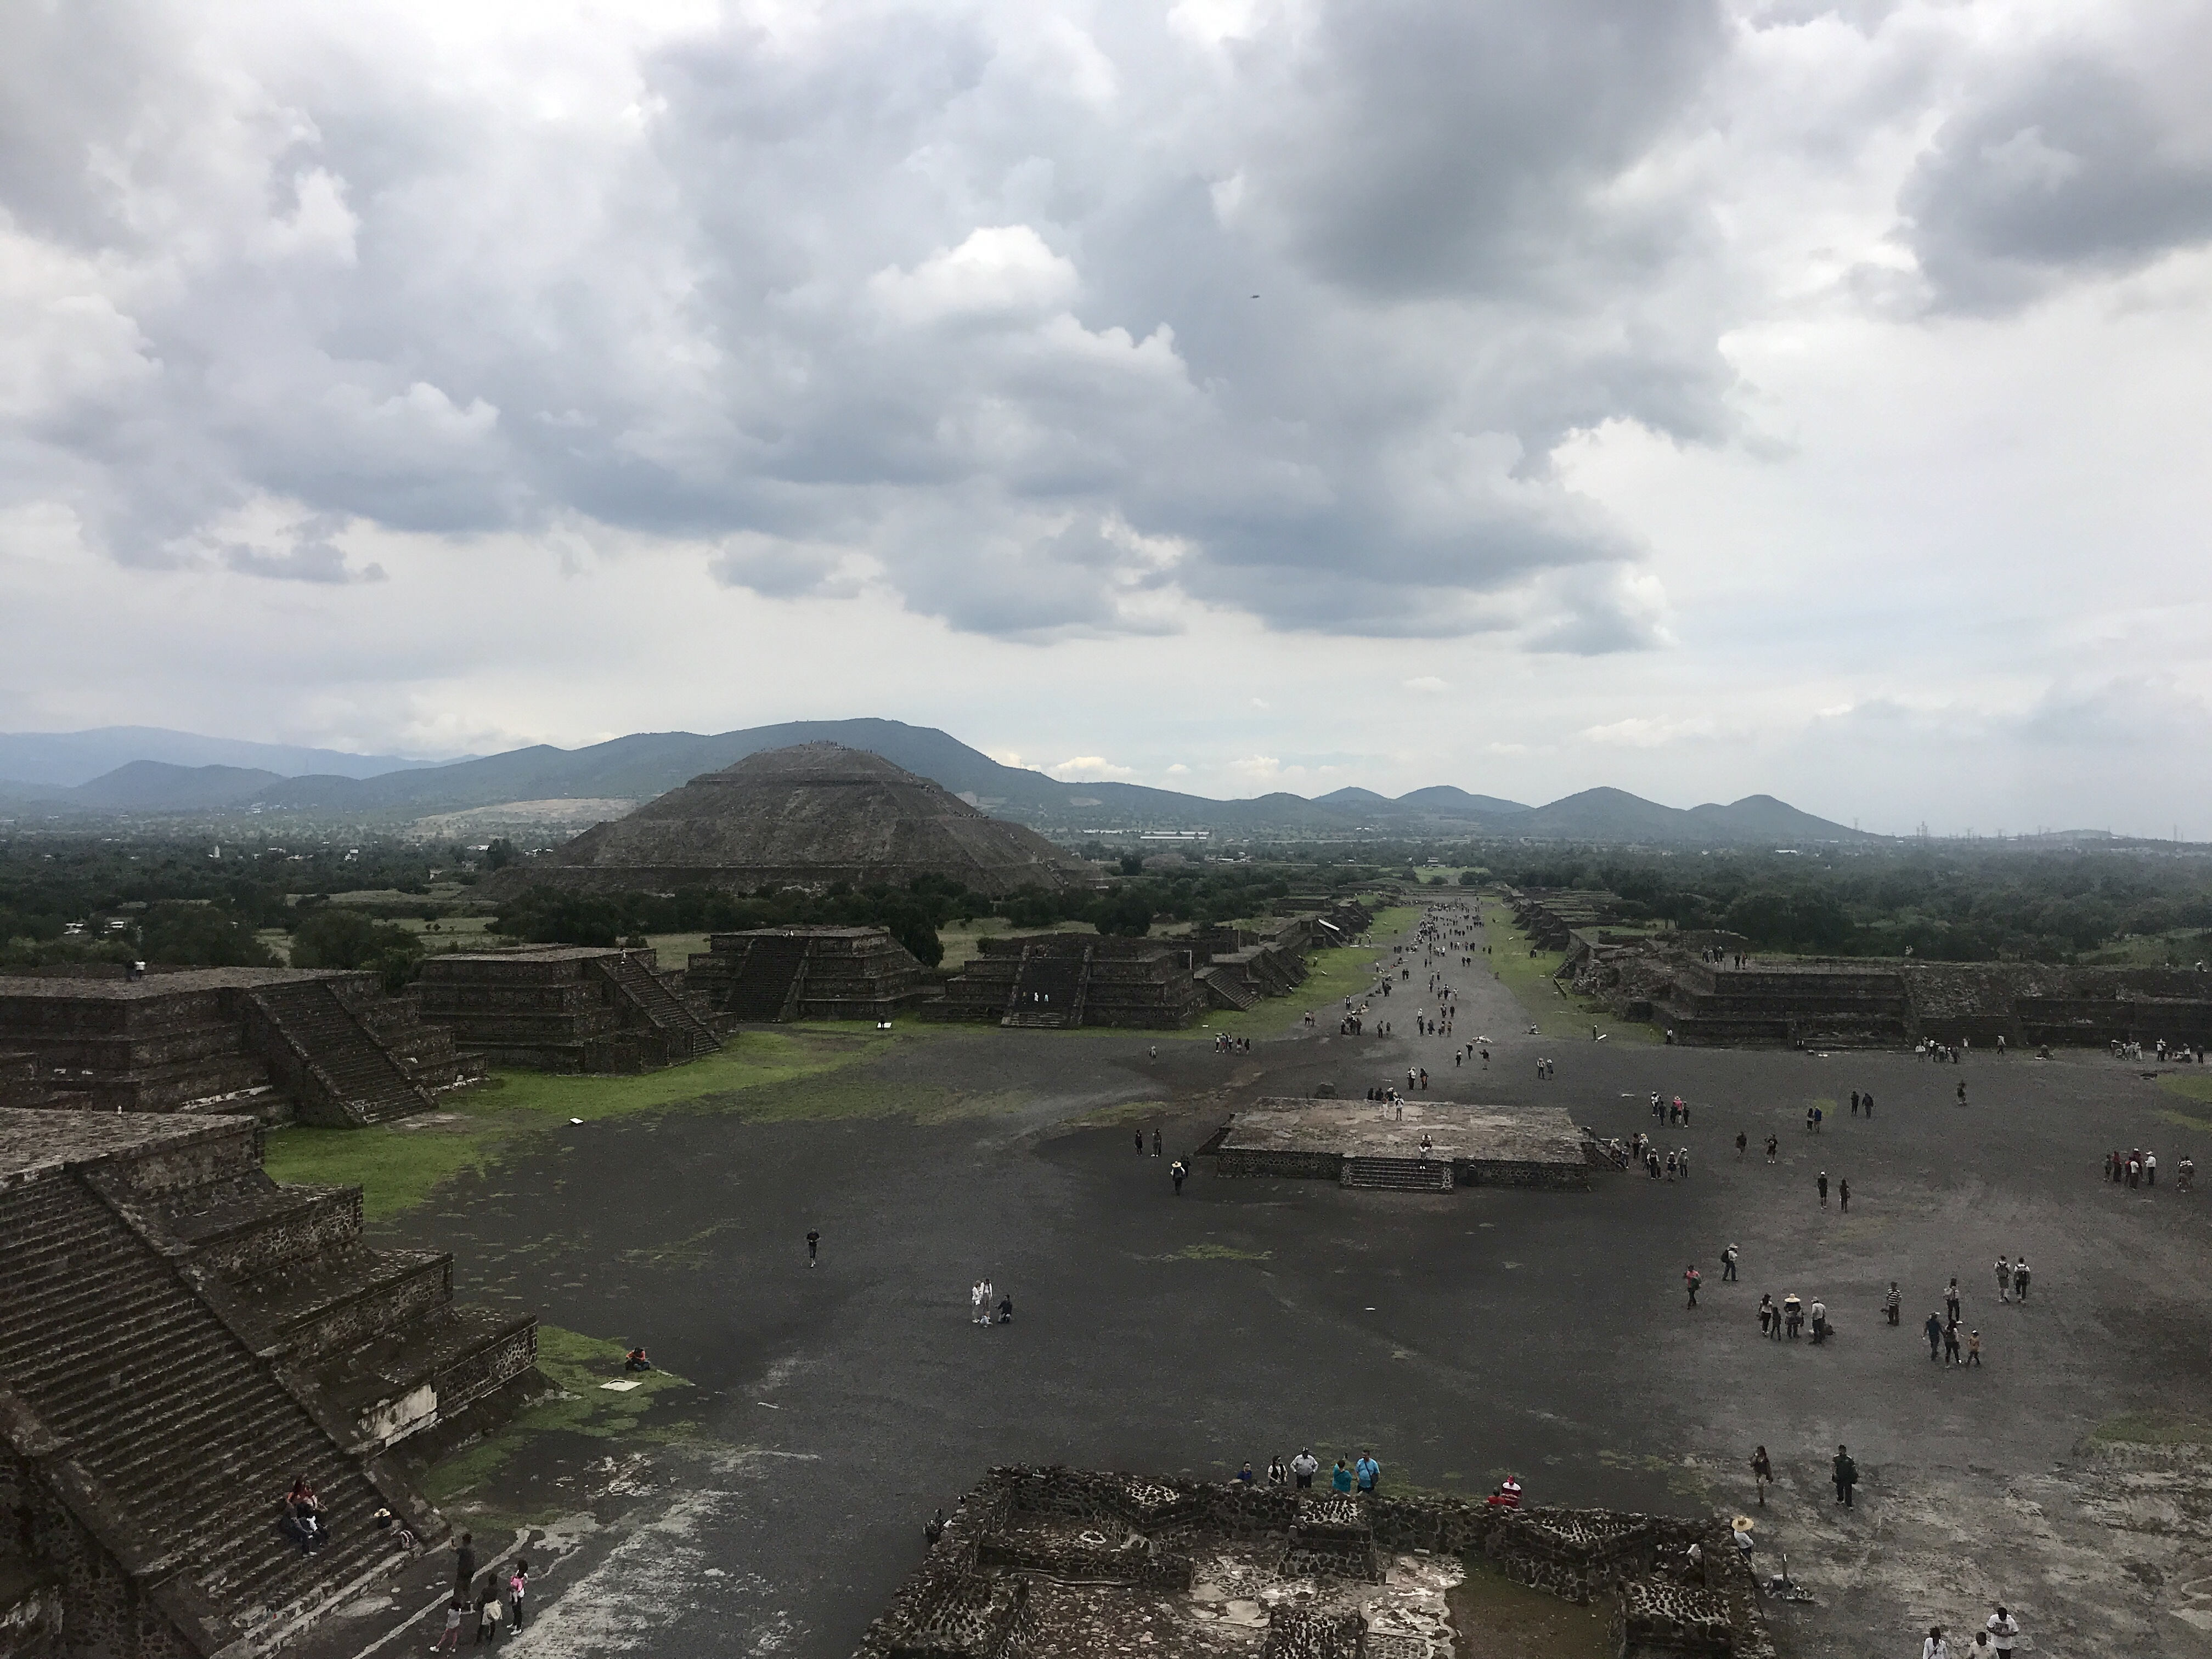 Pyramid of the Sun, Teotihuacan, from Pyramid of the Moon